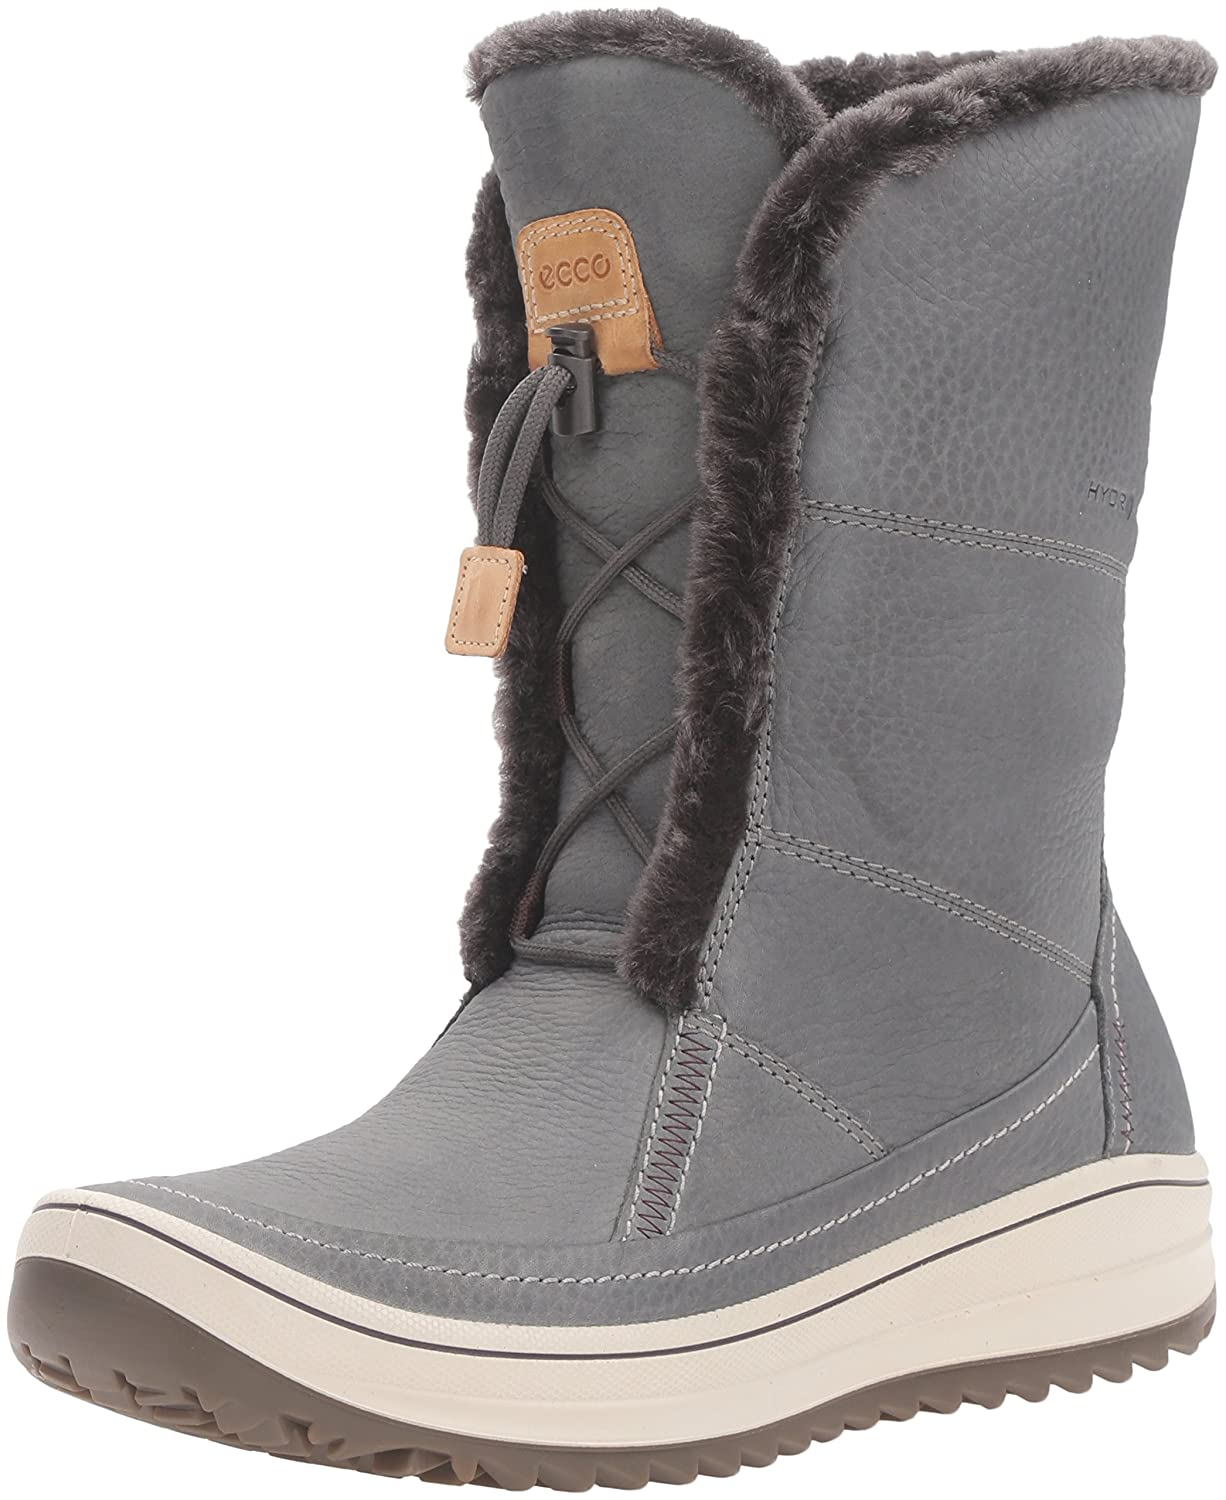 ECCO Women's Trace Tie Hydromax Snow Boot B0163GKK7M 40 EU/9-9.5 M US|Dark Shadow